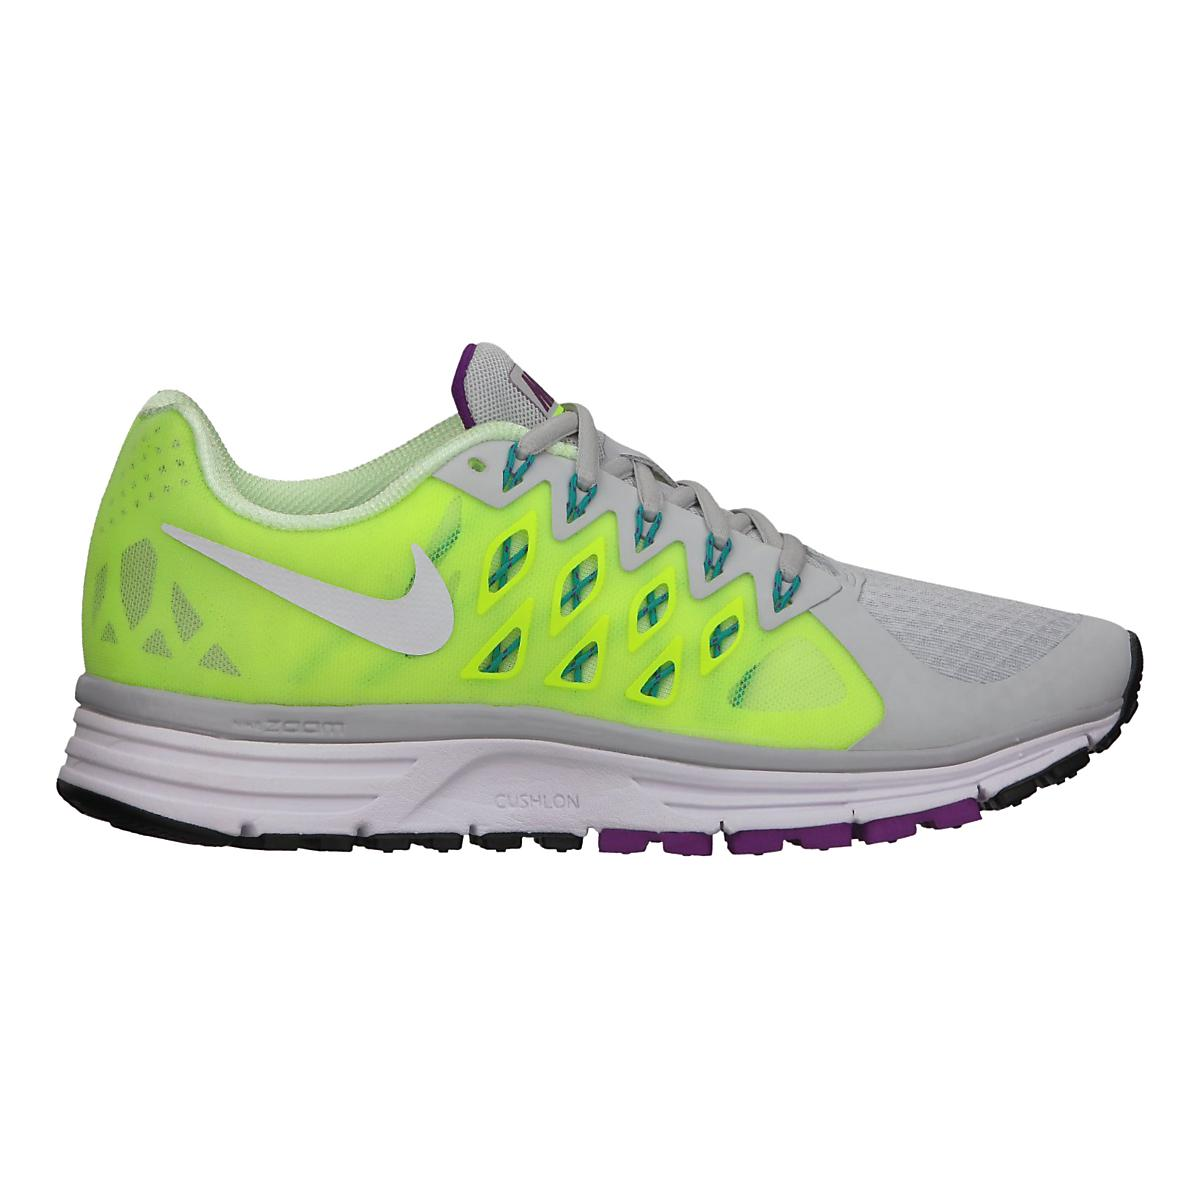 60333f4ca5a5d Womens Nike Air Zoom Vomero 9 Running Shoe at Road Runner Sports